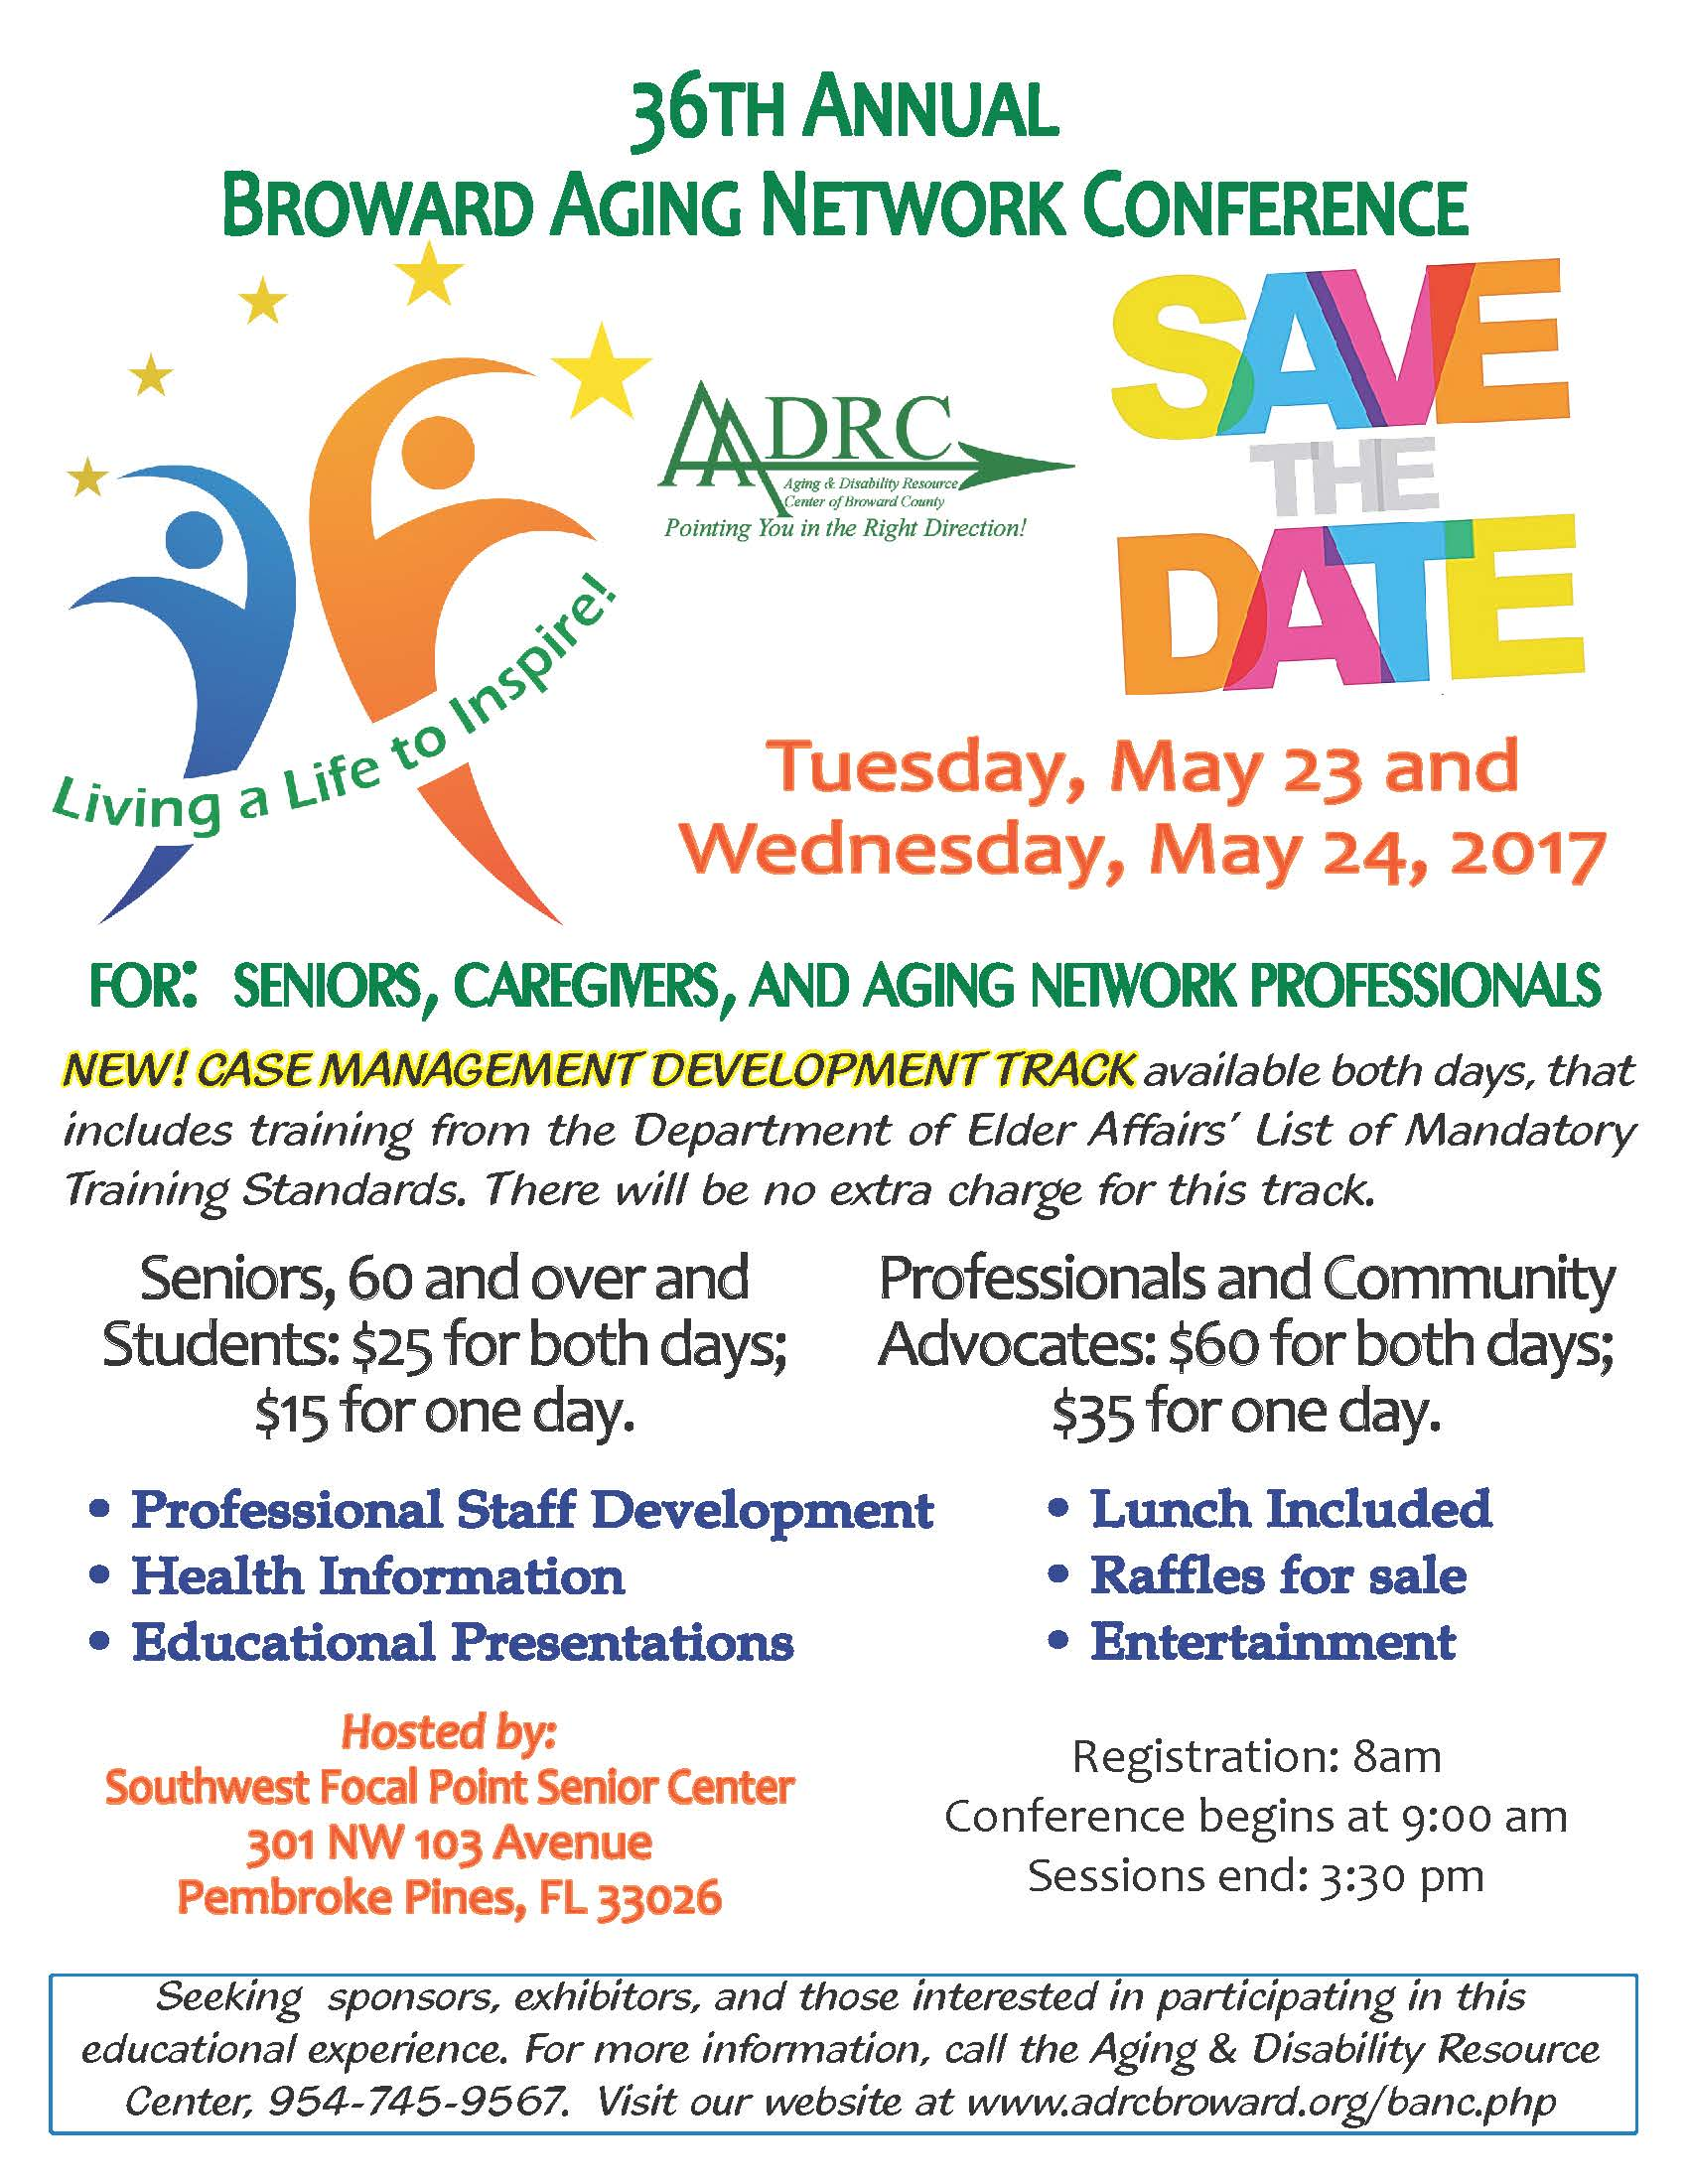 BANC 2017  Save the Date Flyer.jpg